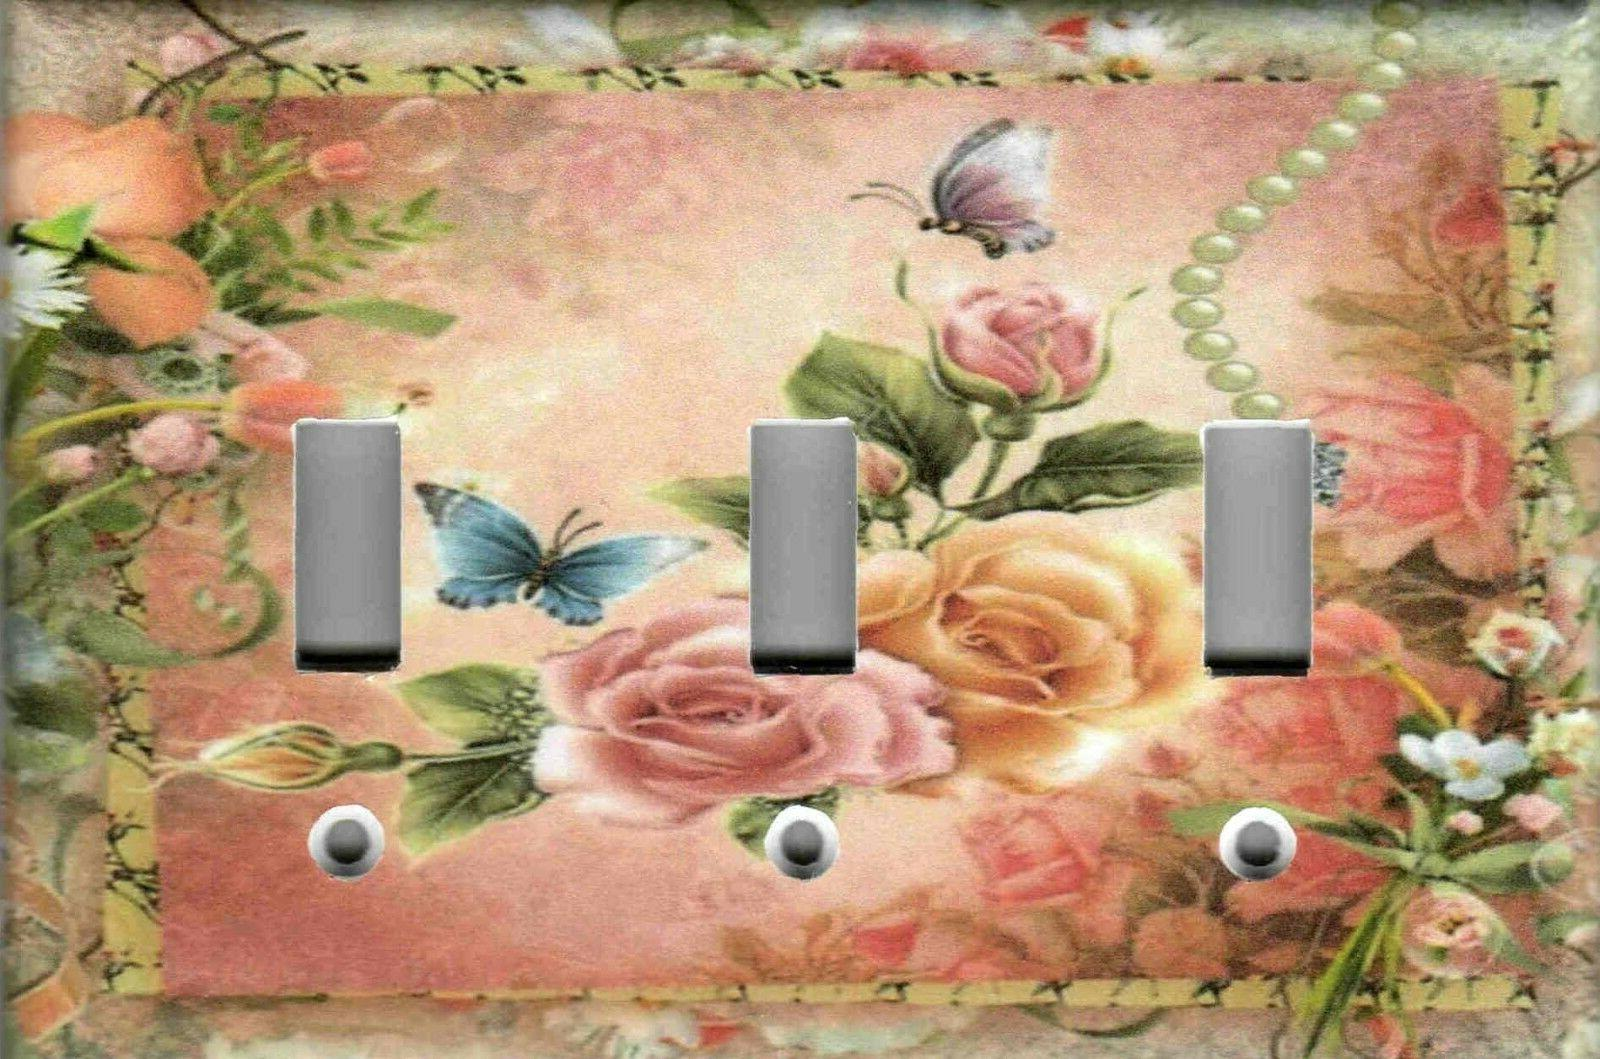 PINK SHABBY CHIC LIGHT OUTLETS